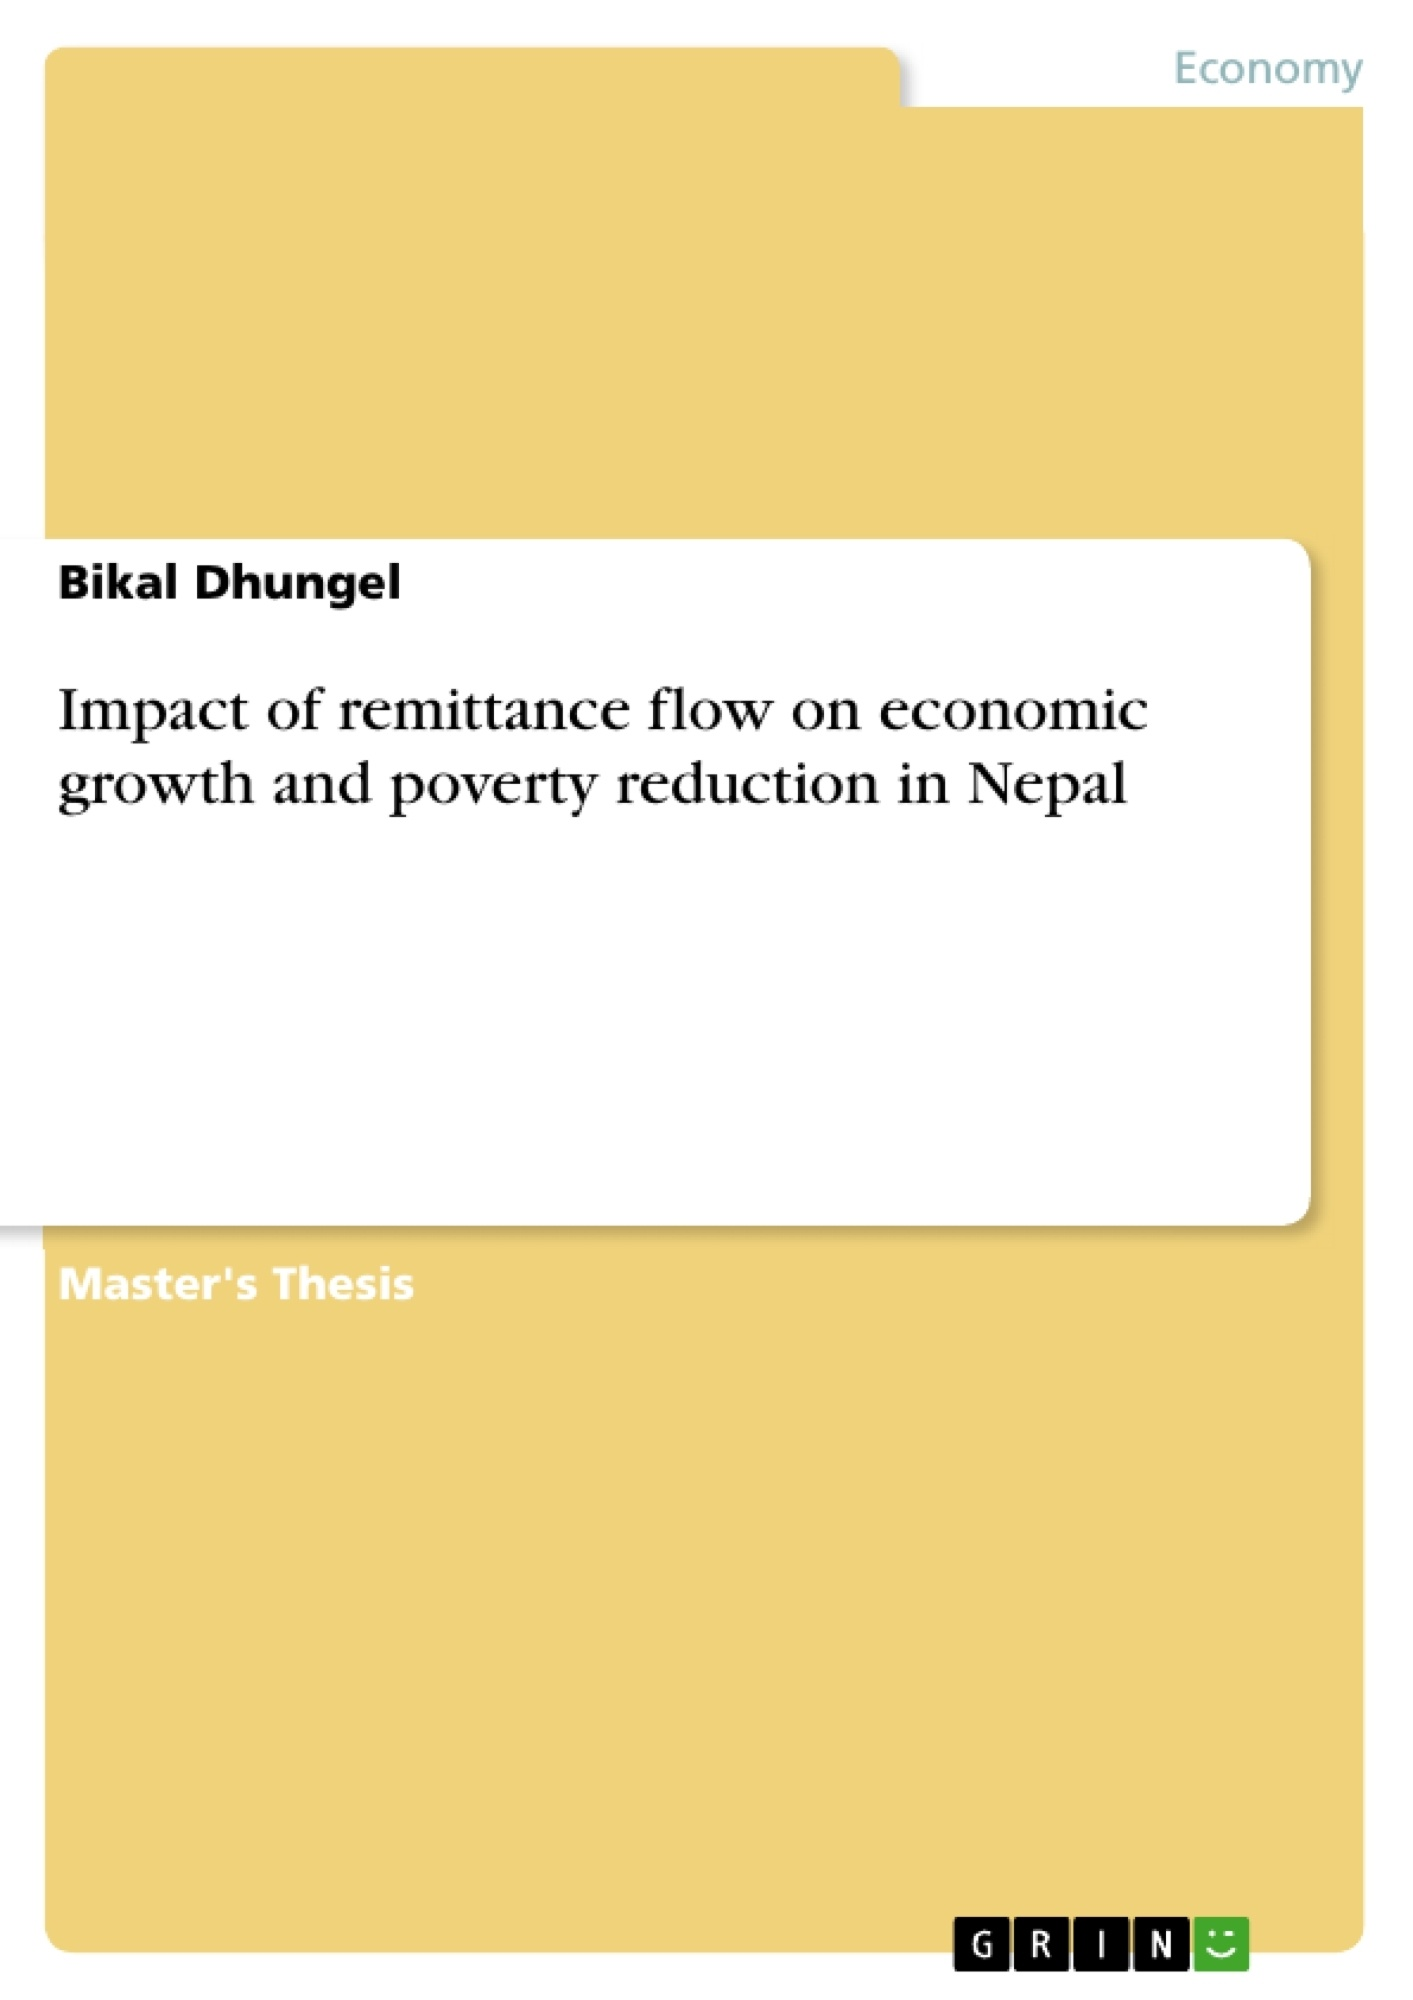 essay for poverty reduction poverty eradication in india essay ipgproje com torontoist